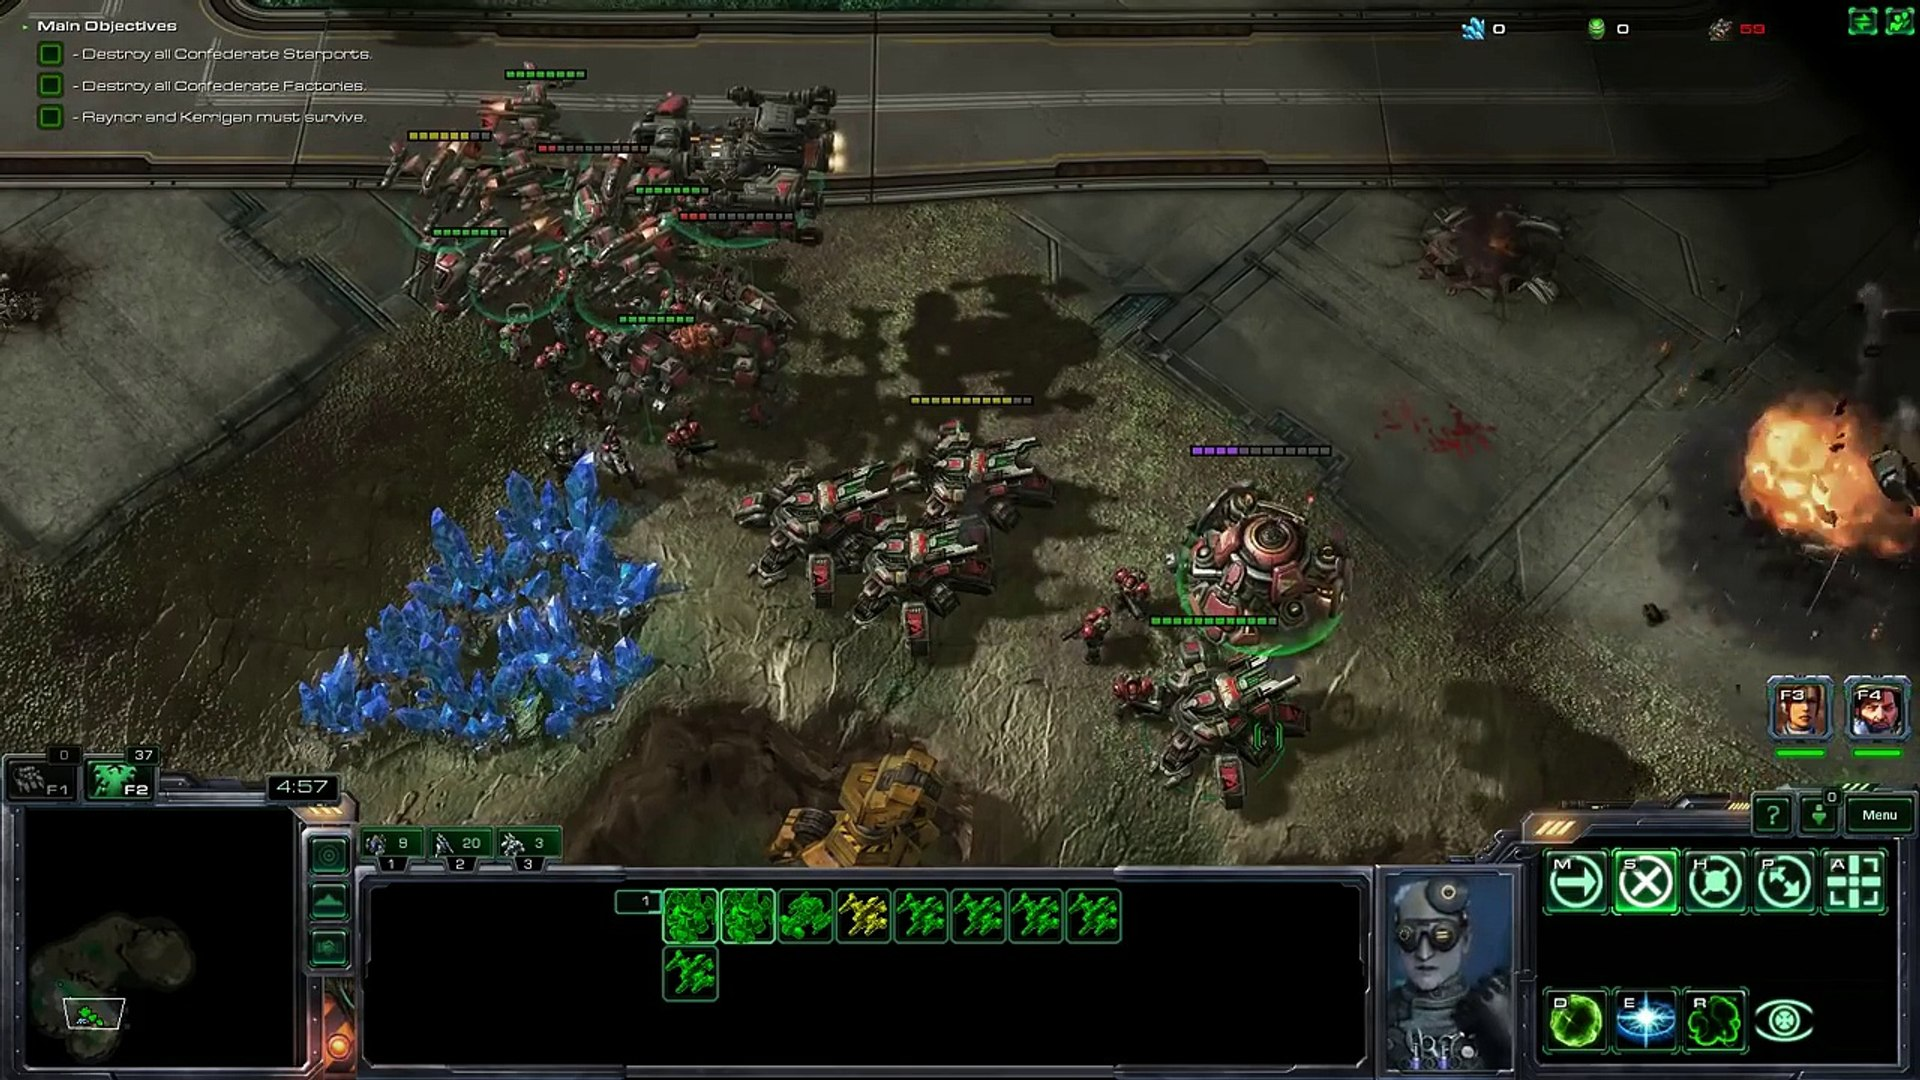 Starcraft: Mass Recall T1 8b (HIDDEN!) - Operation Silent Scream